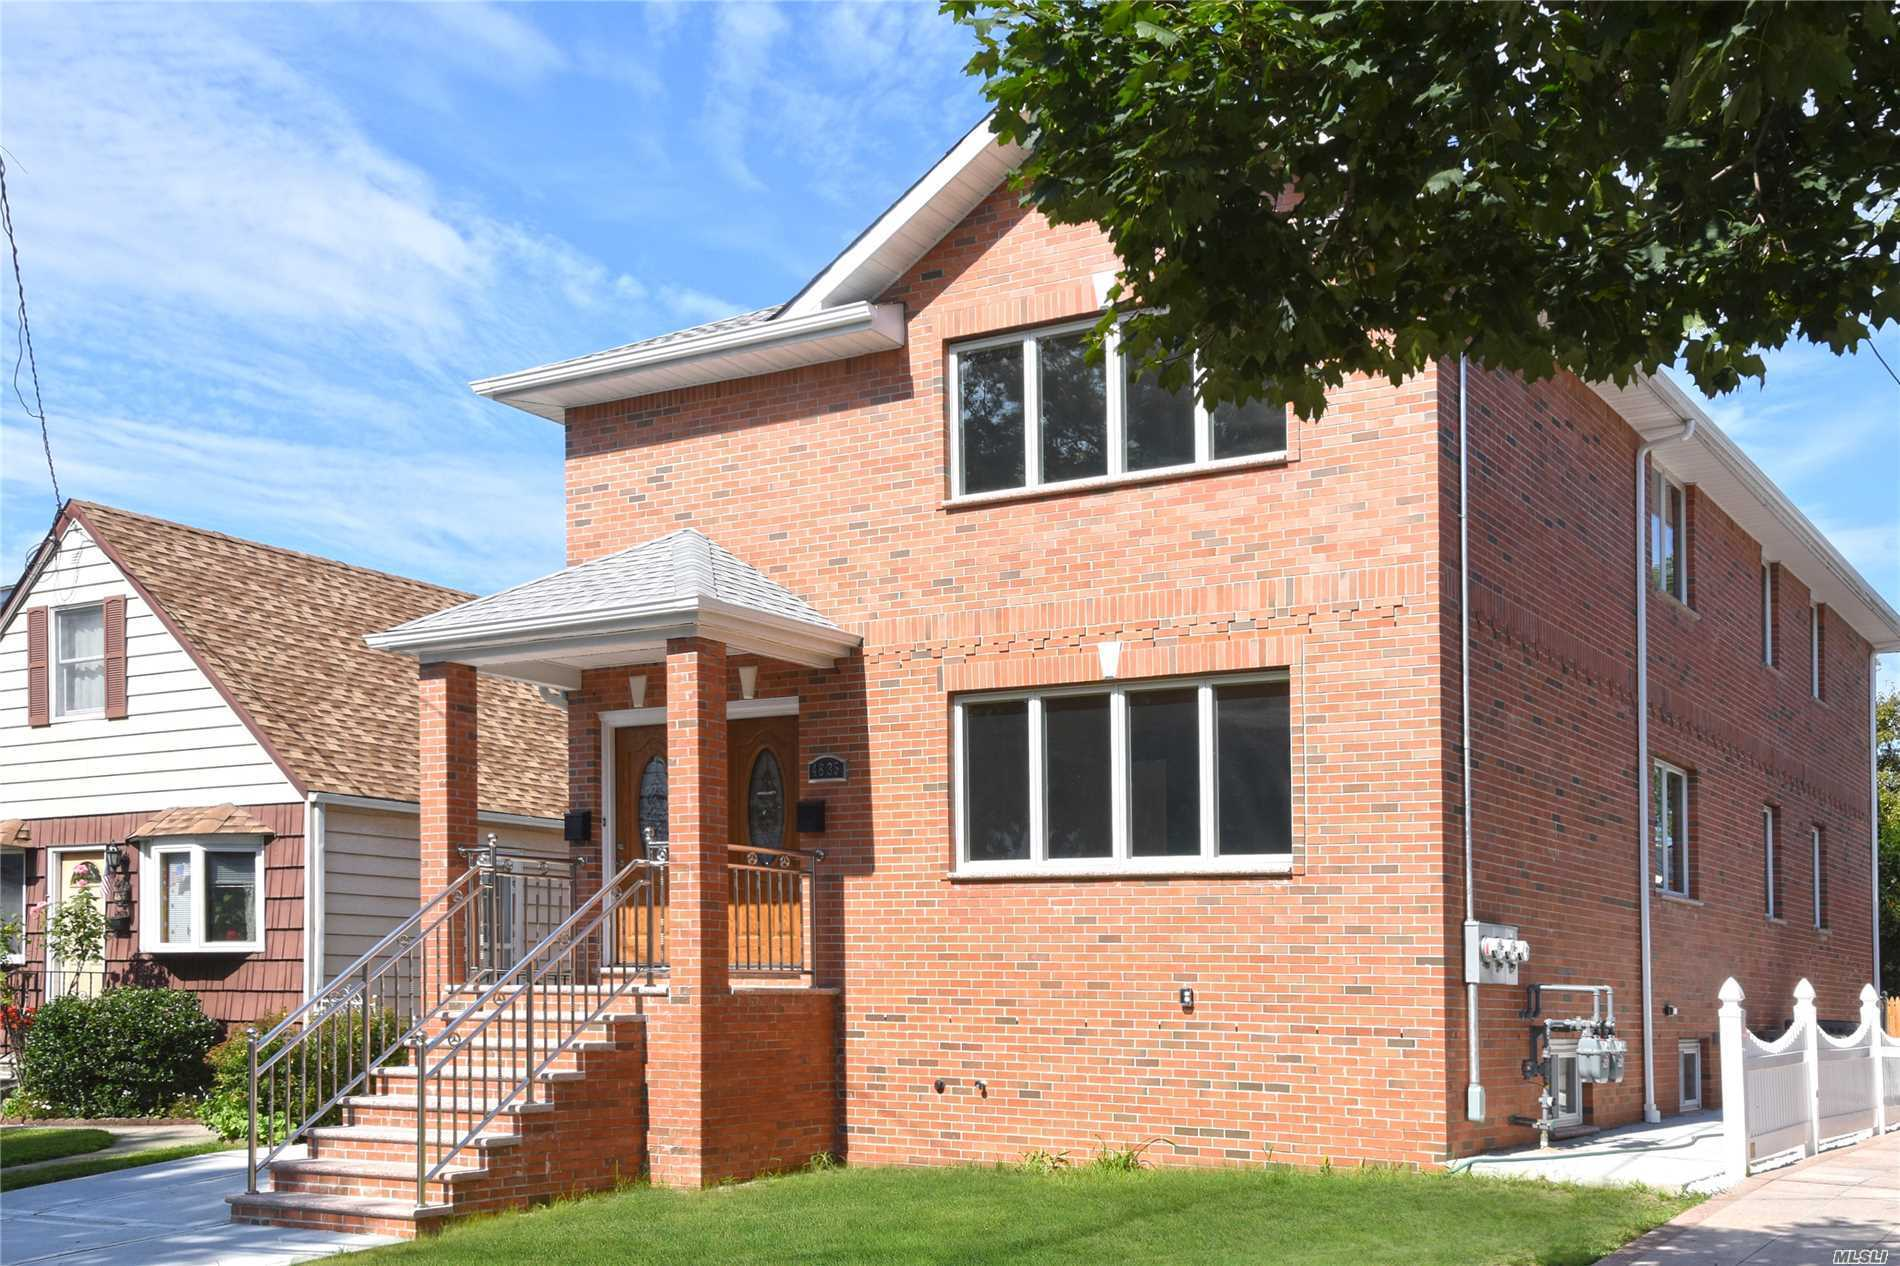 2018 Brand New 2 Family House,  Lot 40X100 4000Sqft, Hardwood Floor, With Great Layout, Large Basement, Large Back Yard, #26 Best School Distract, Walking Distance To Q27, 31, & Super Market, Bell Blvd. Must See!!! ___